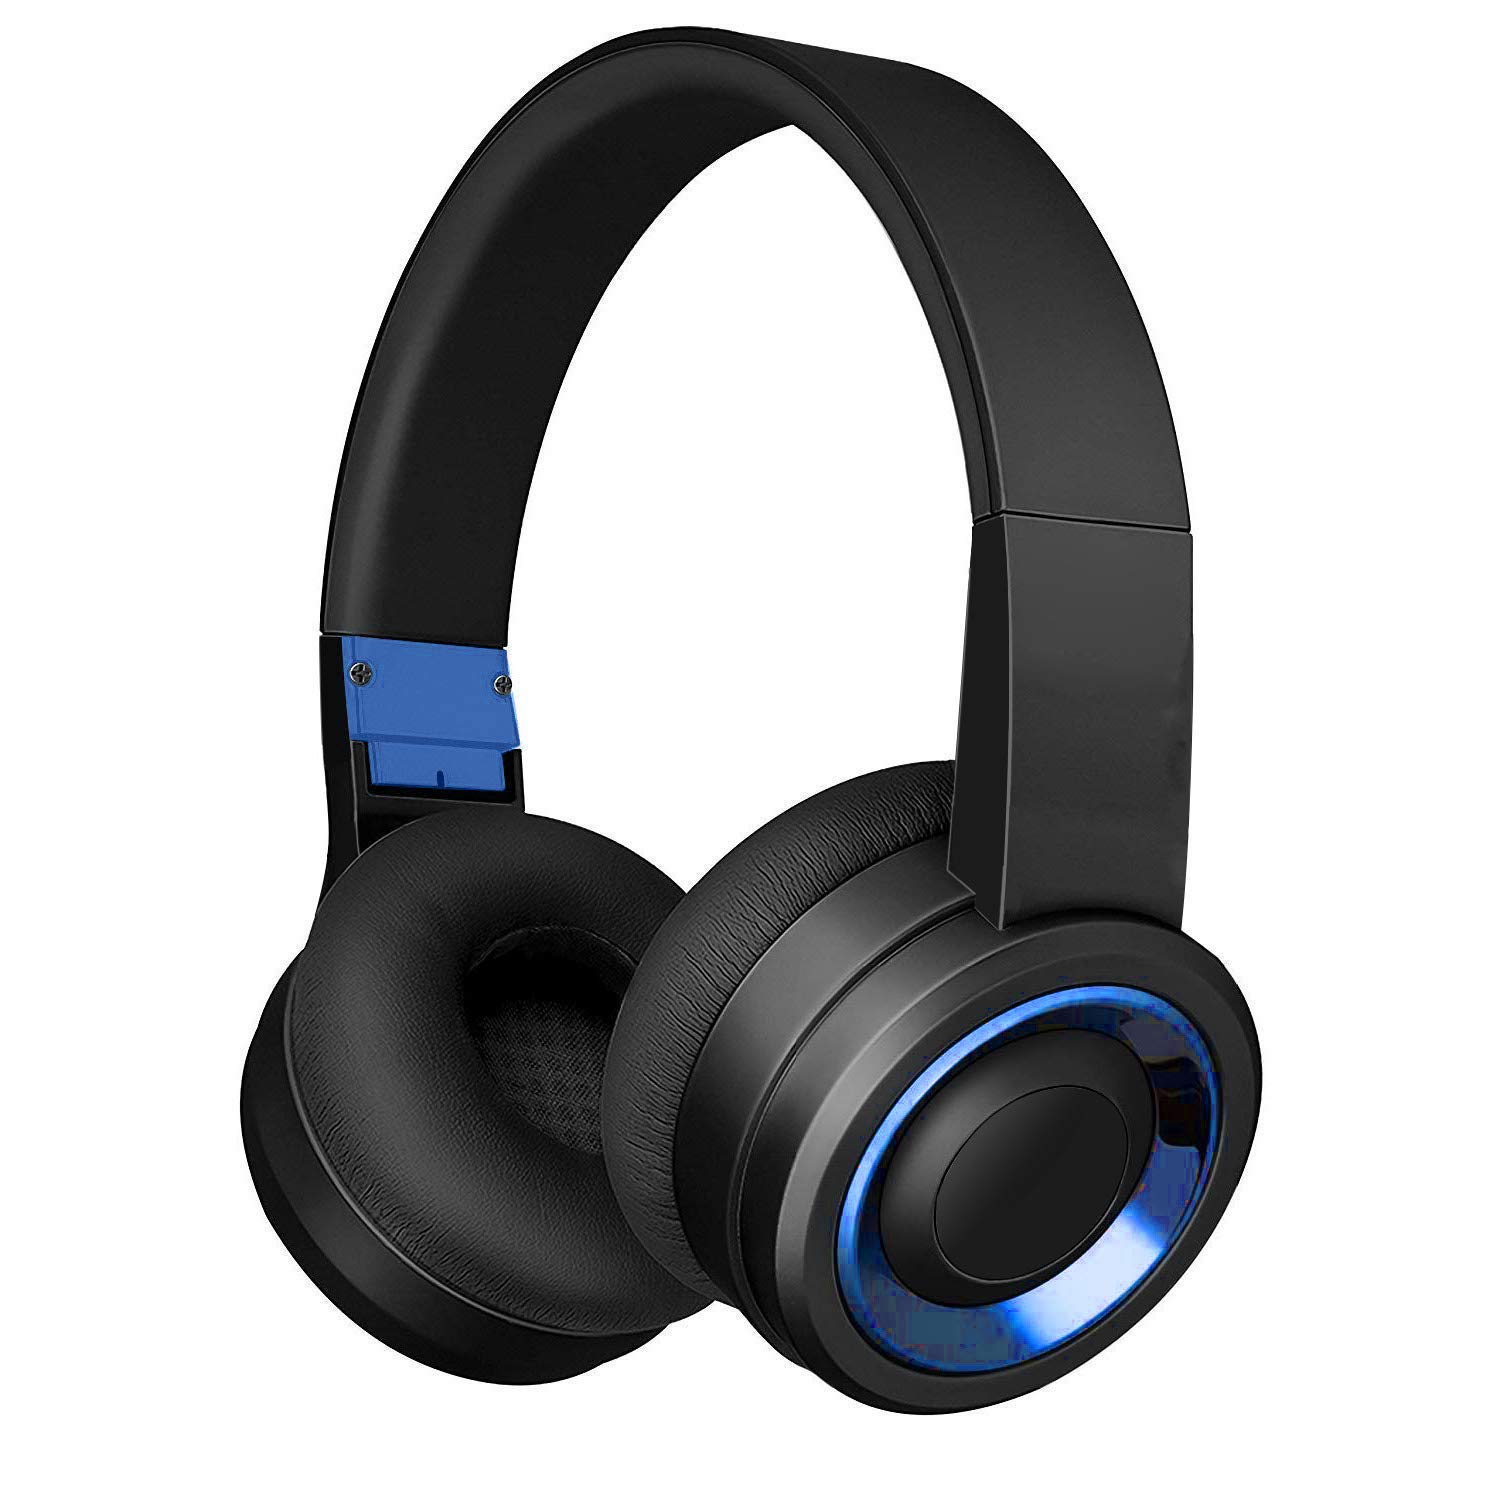 Bluetooth Headphones with Built-in Mic, Wireless and Wired Over-Ear Headset with Comfortable Earpad for PC, Tablets and Smartphones Black Blue